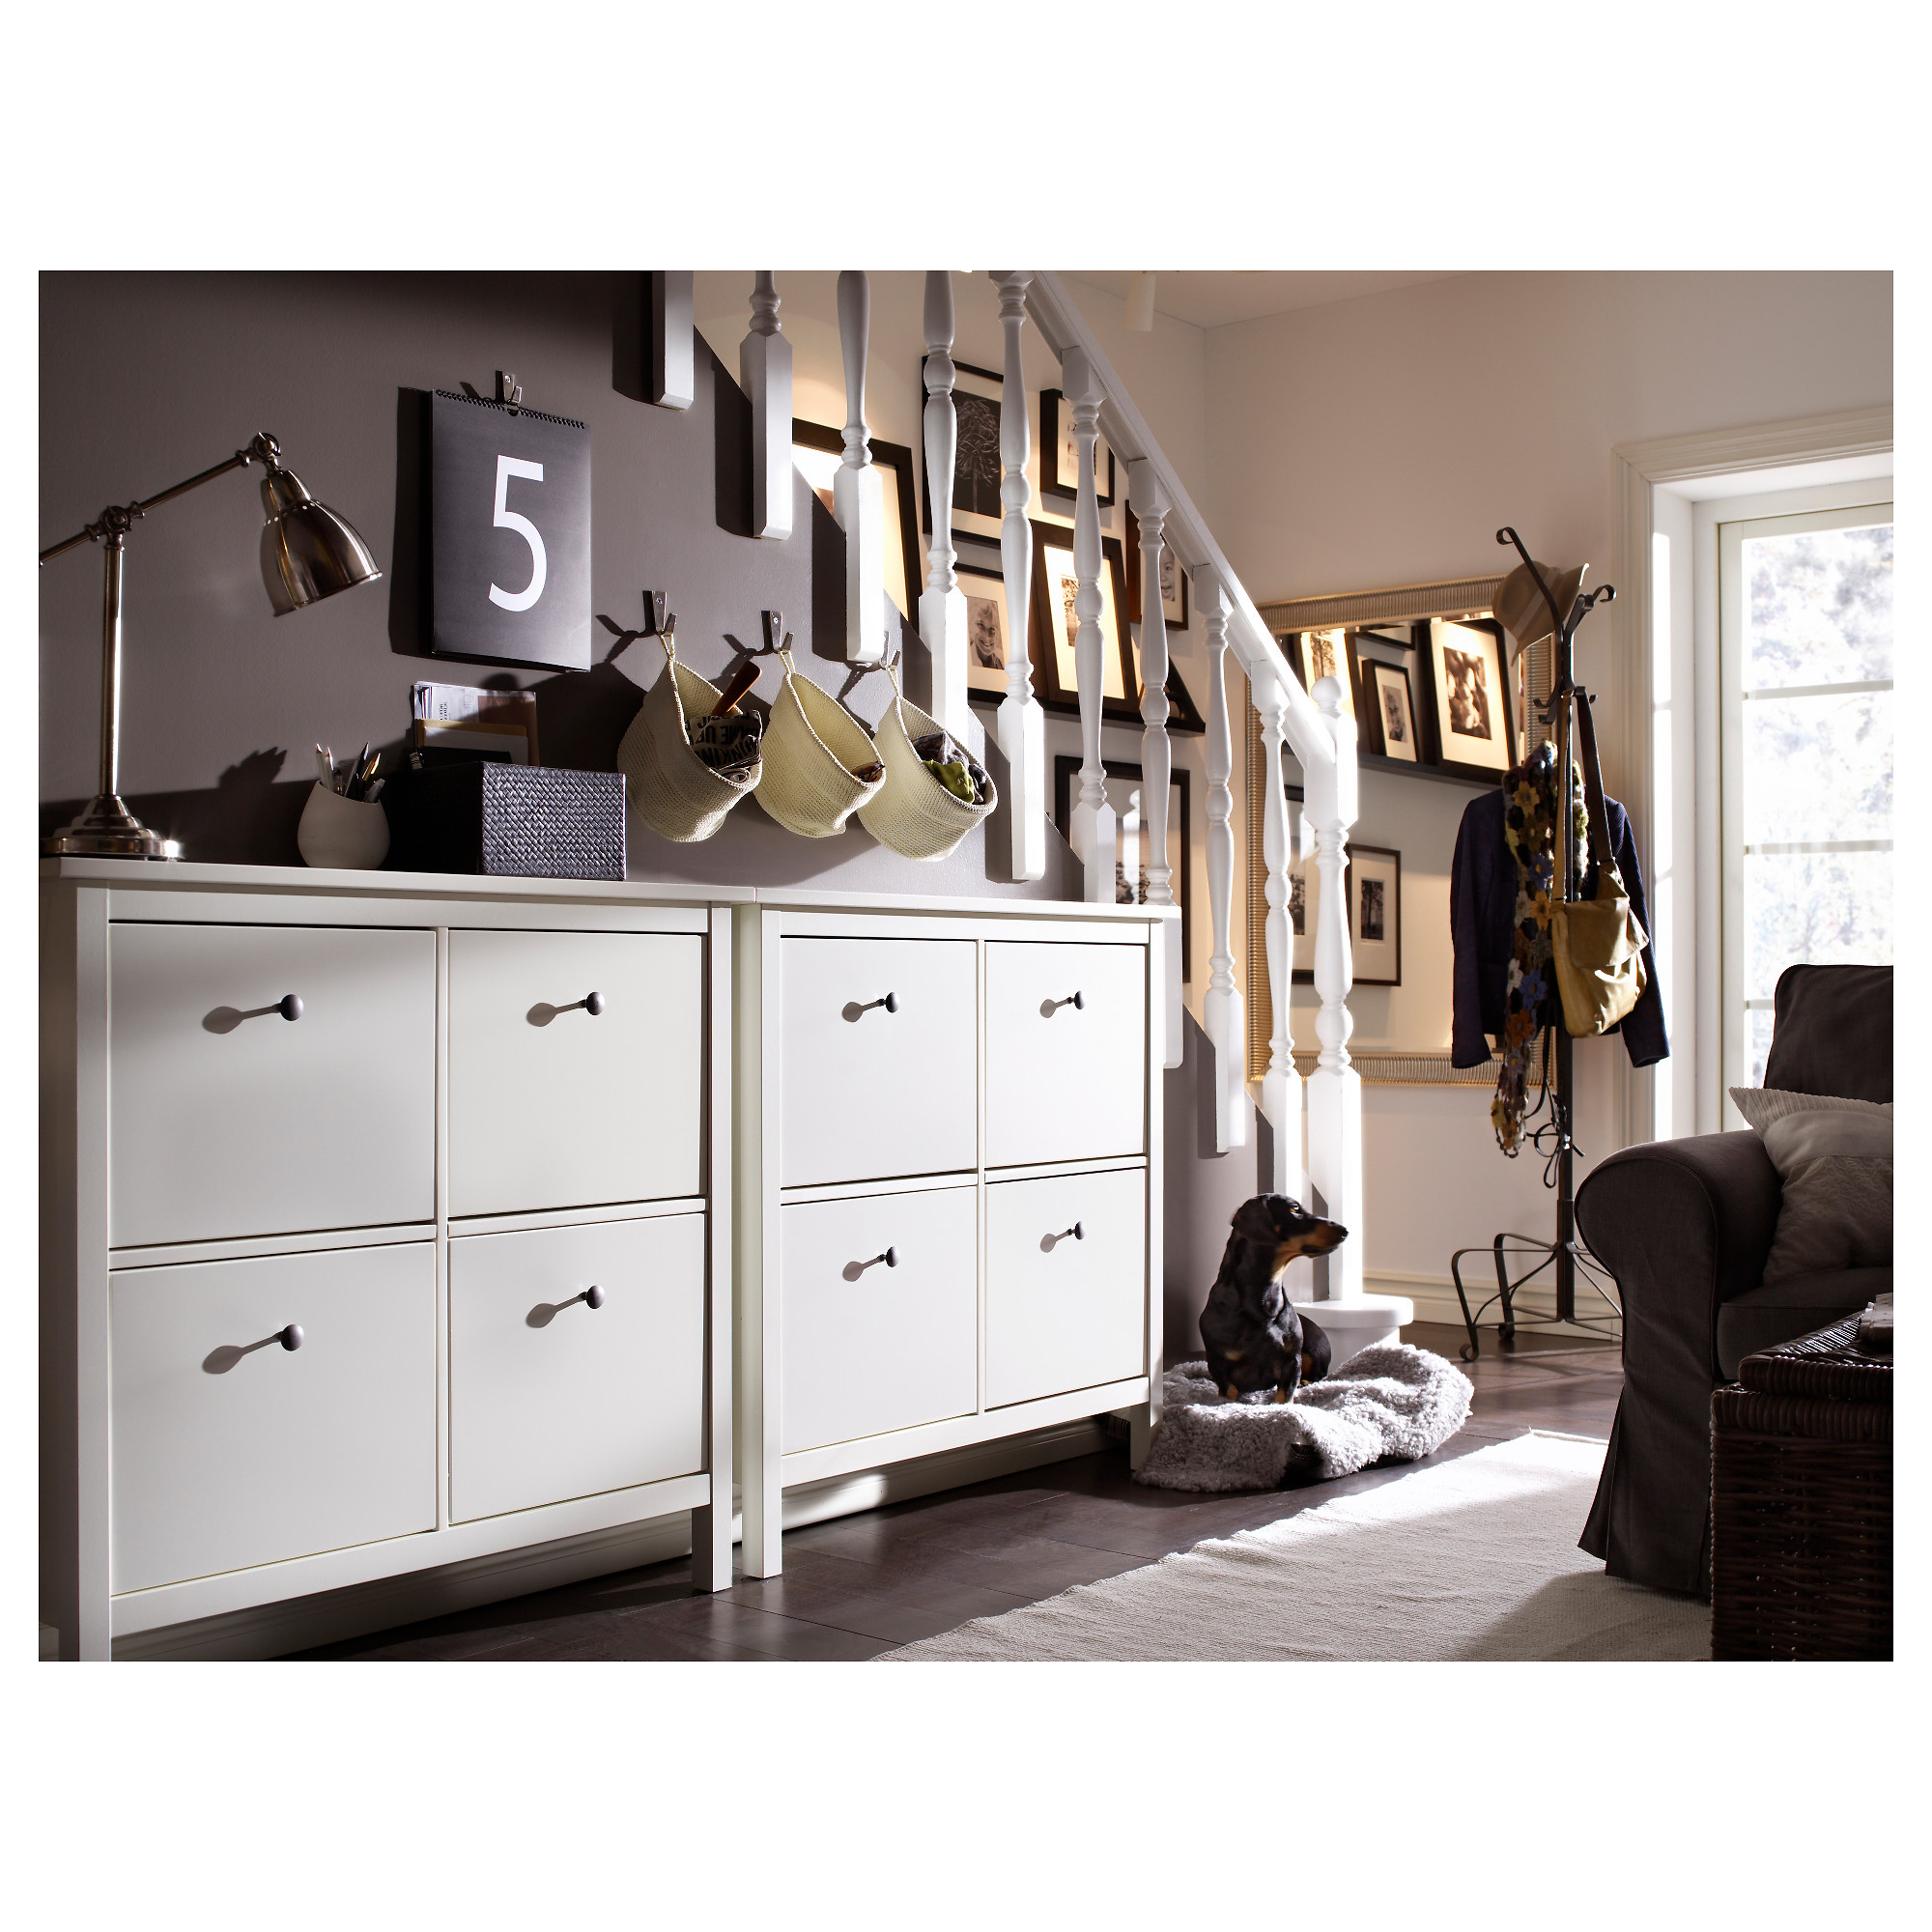 Beau HEMNES Shoe Cabinet With 4 Compartments   IKEA